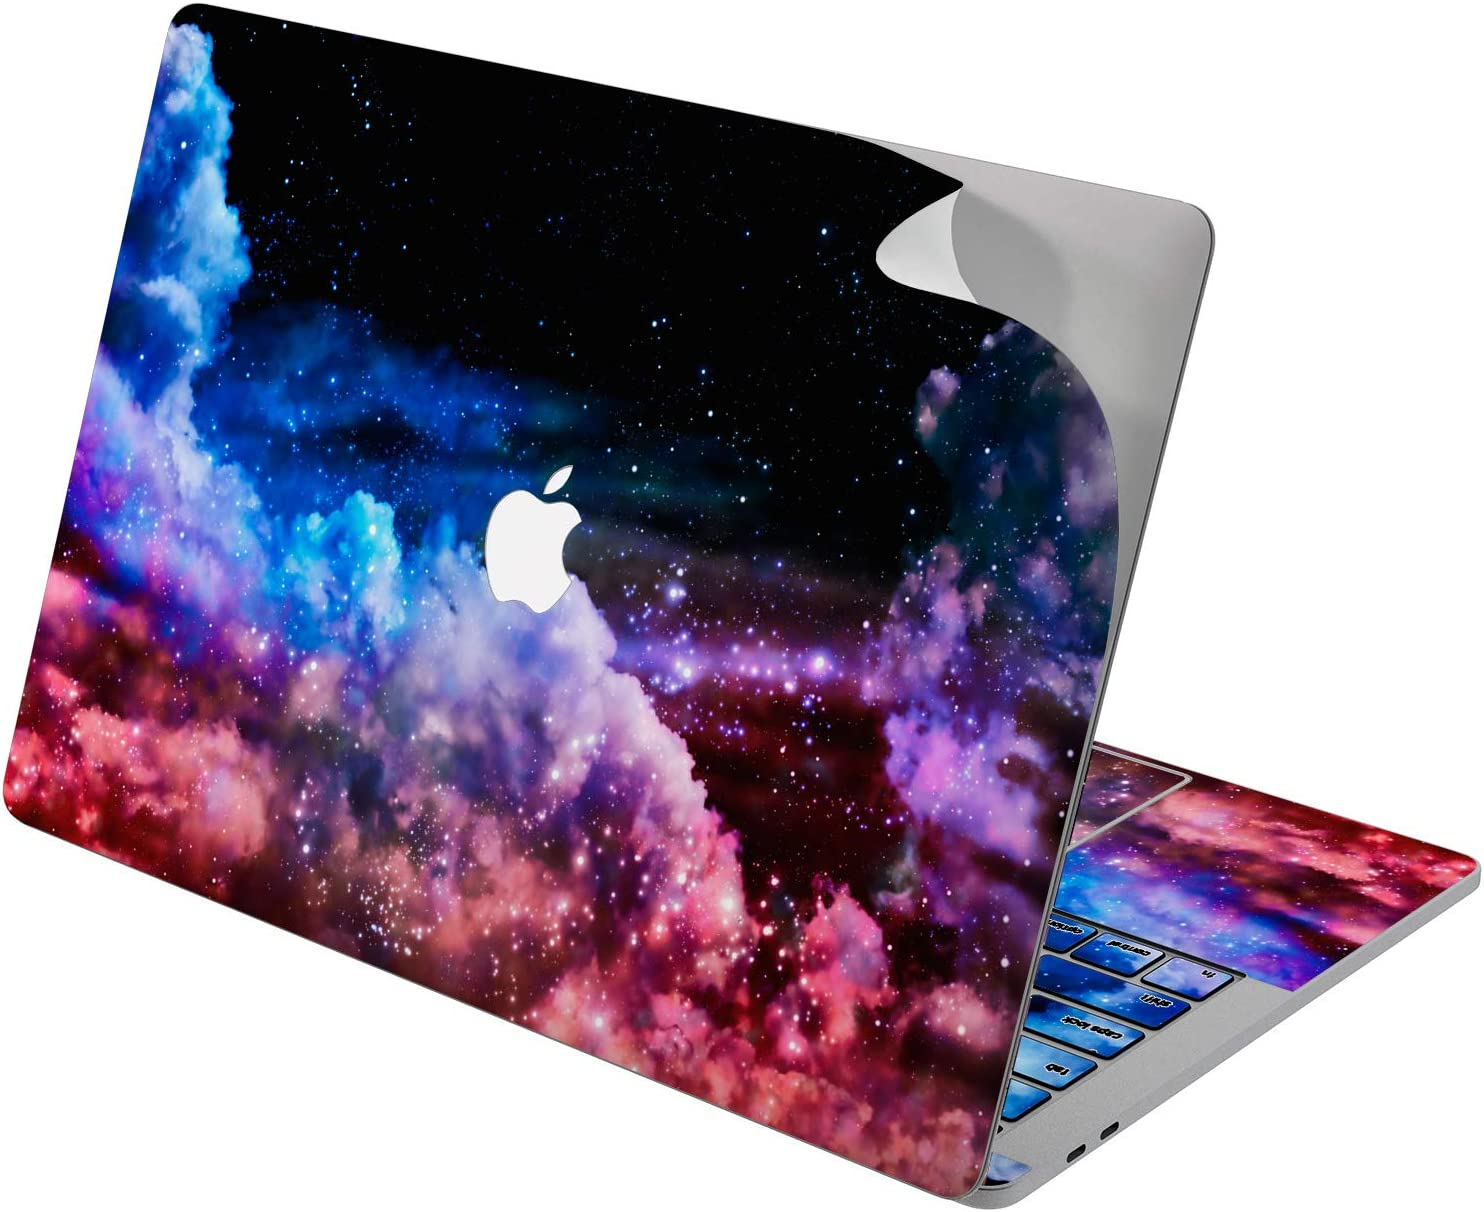 "Cavka Vinyl Decal Skin for Apple MacBook Pro 13"" 2019 15"" 2018 Air 13"" 2020 Retina 2015 Mac 11"" Mac 12"" Stars Sticker Colorful Clouds Sky Laptop Protective Print Pattern Galaxy Design Beautiful Cover"